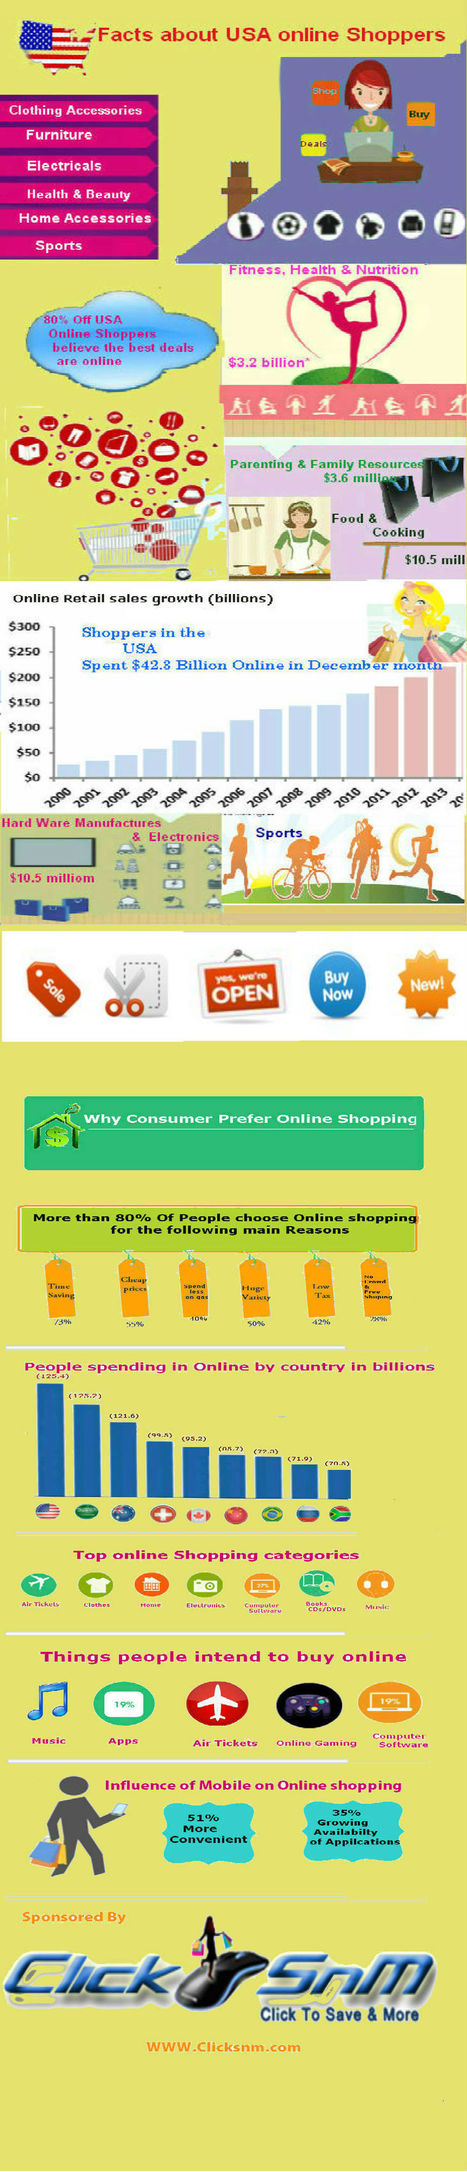 usa-online-shopping-stats.jpg (860x4000 pixels) | Some Interesting Facts about Online USA Shoppers | Scoop.it